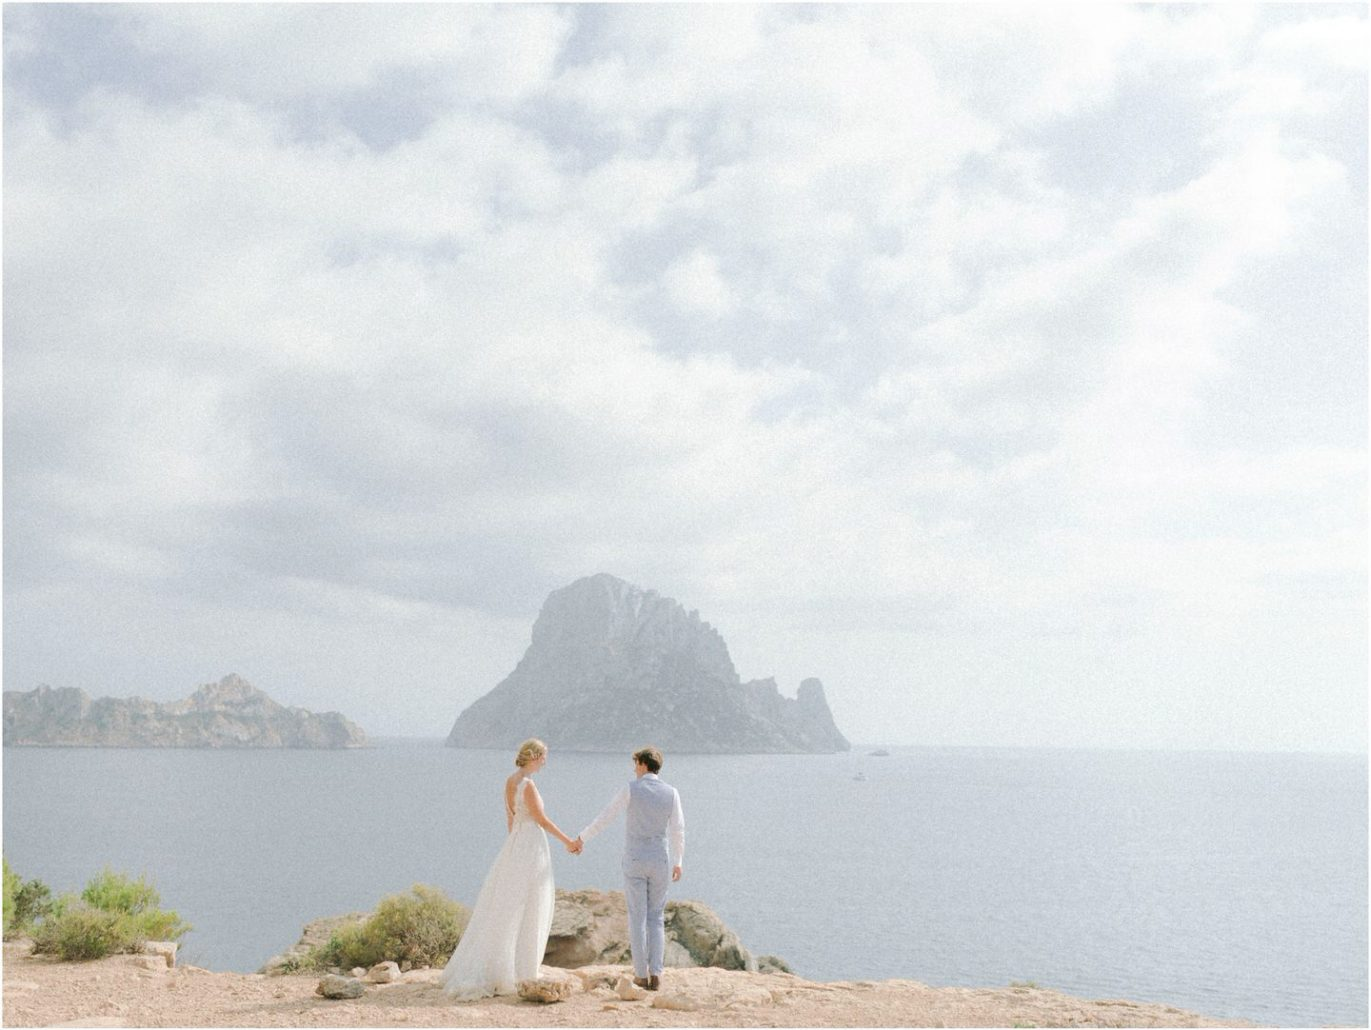 Destination_Wedding_Photographer_Ibiza_Youri_Claessens_0242